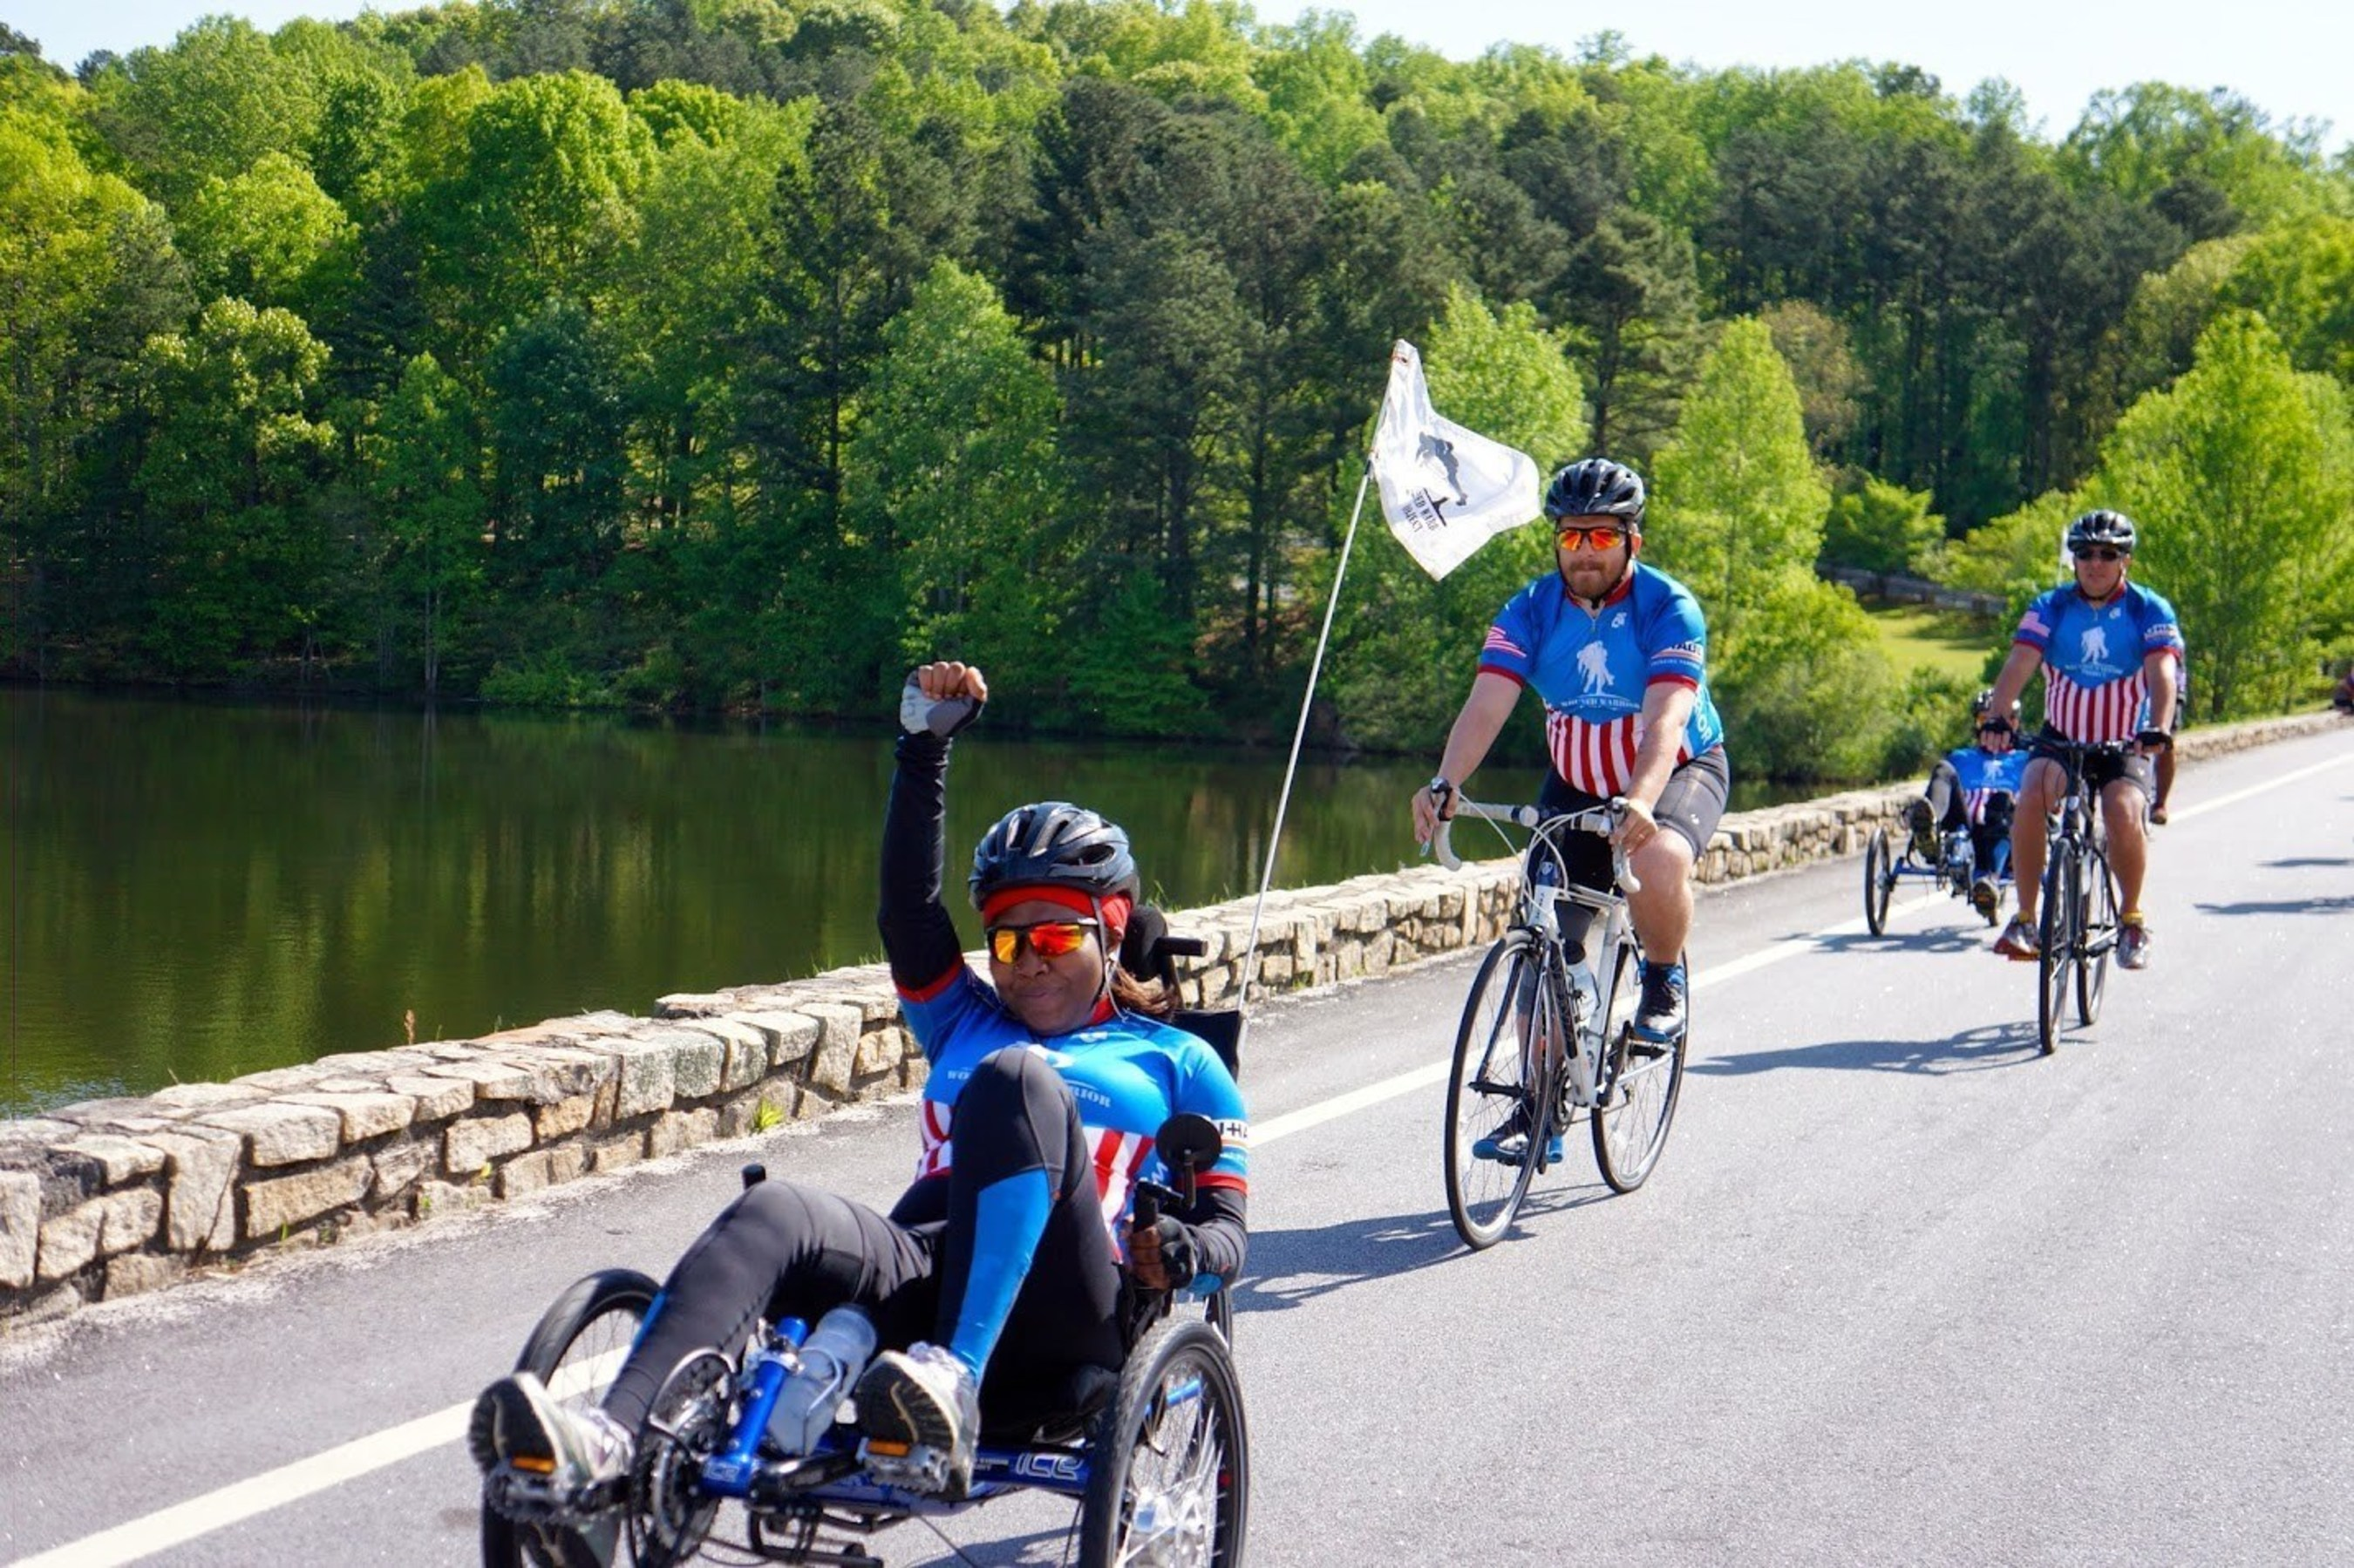 Wounded veterans participating in the 2015 Wounded Warrior Project Soldier Ride in Atlanta.